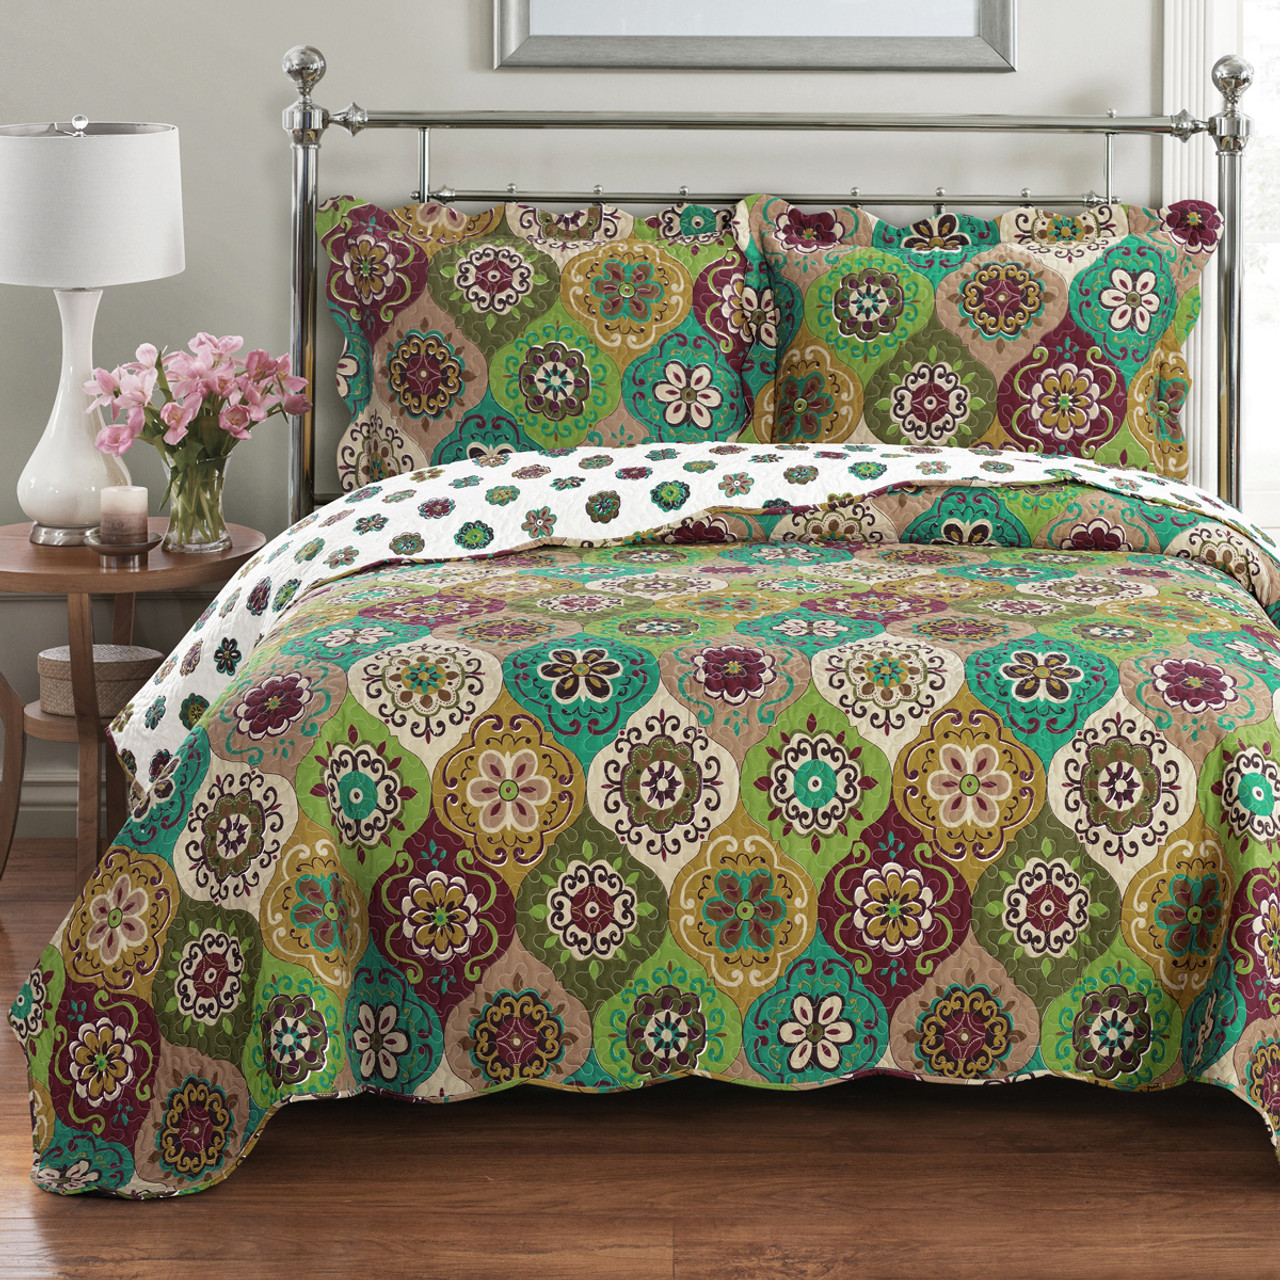 Delightful Bonnie Quilted Coverlet Set Image ...